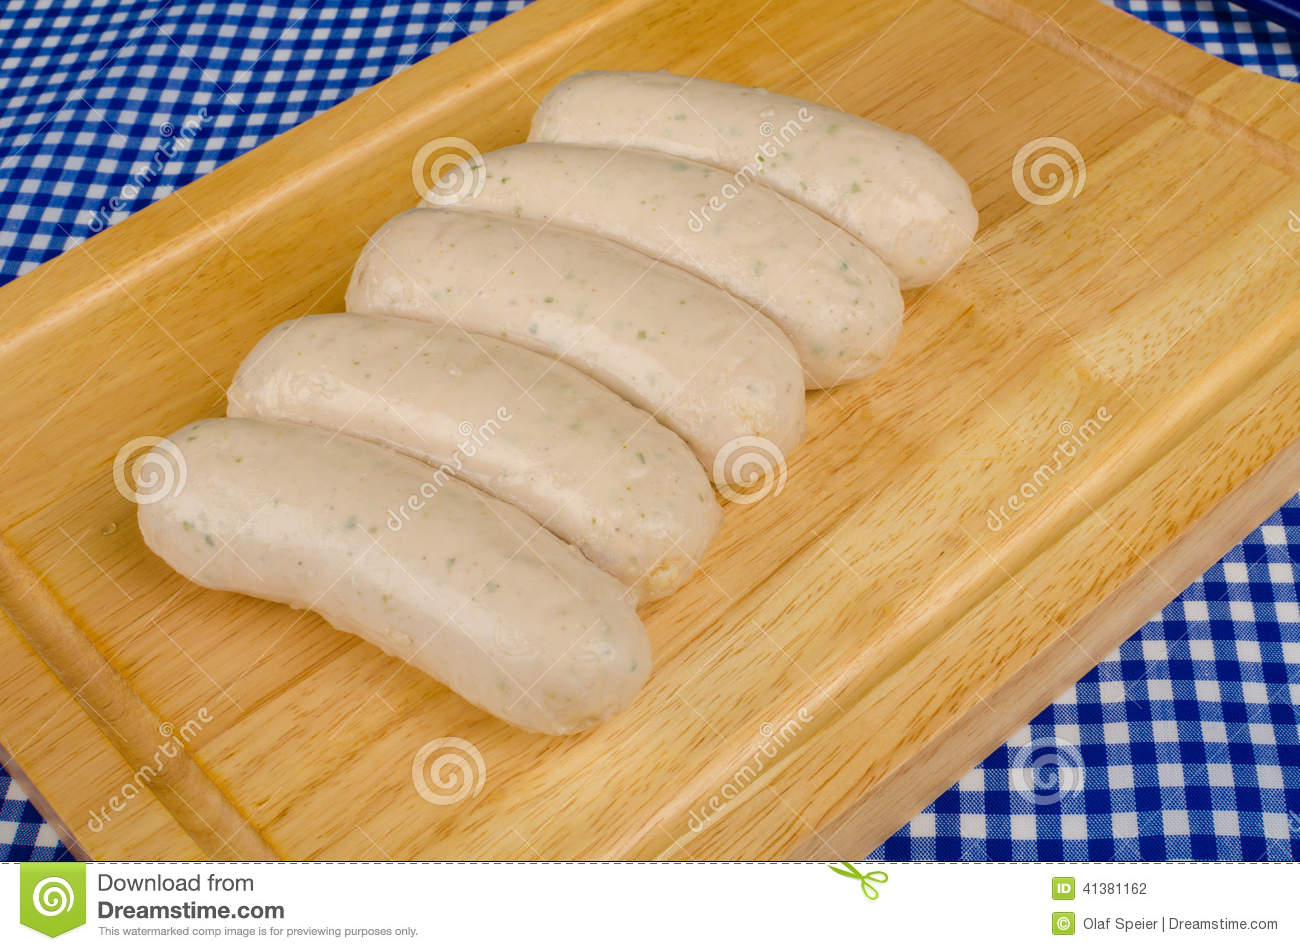 German Sausages On Chopping Board Stock Photo Image Of Meat Weisswurst 41381162